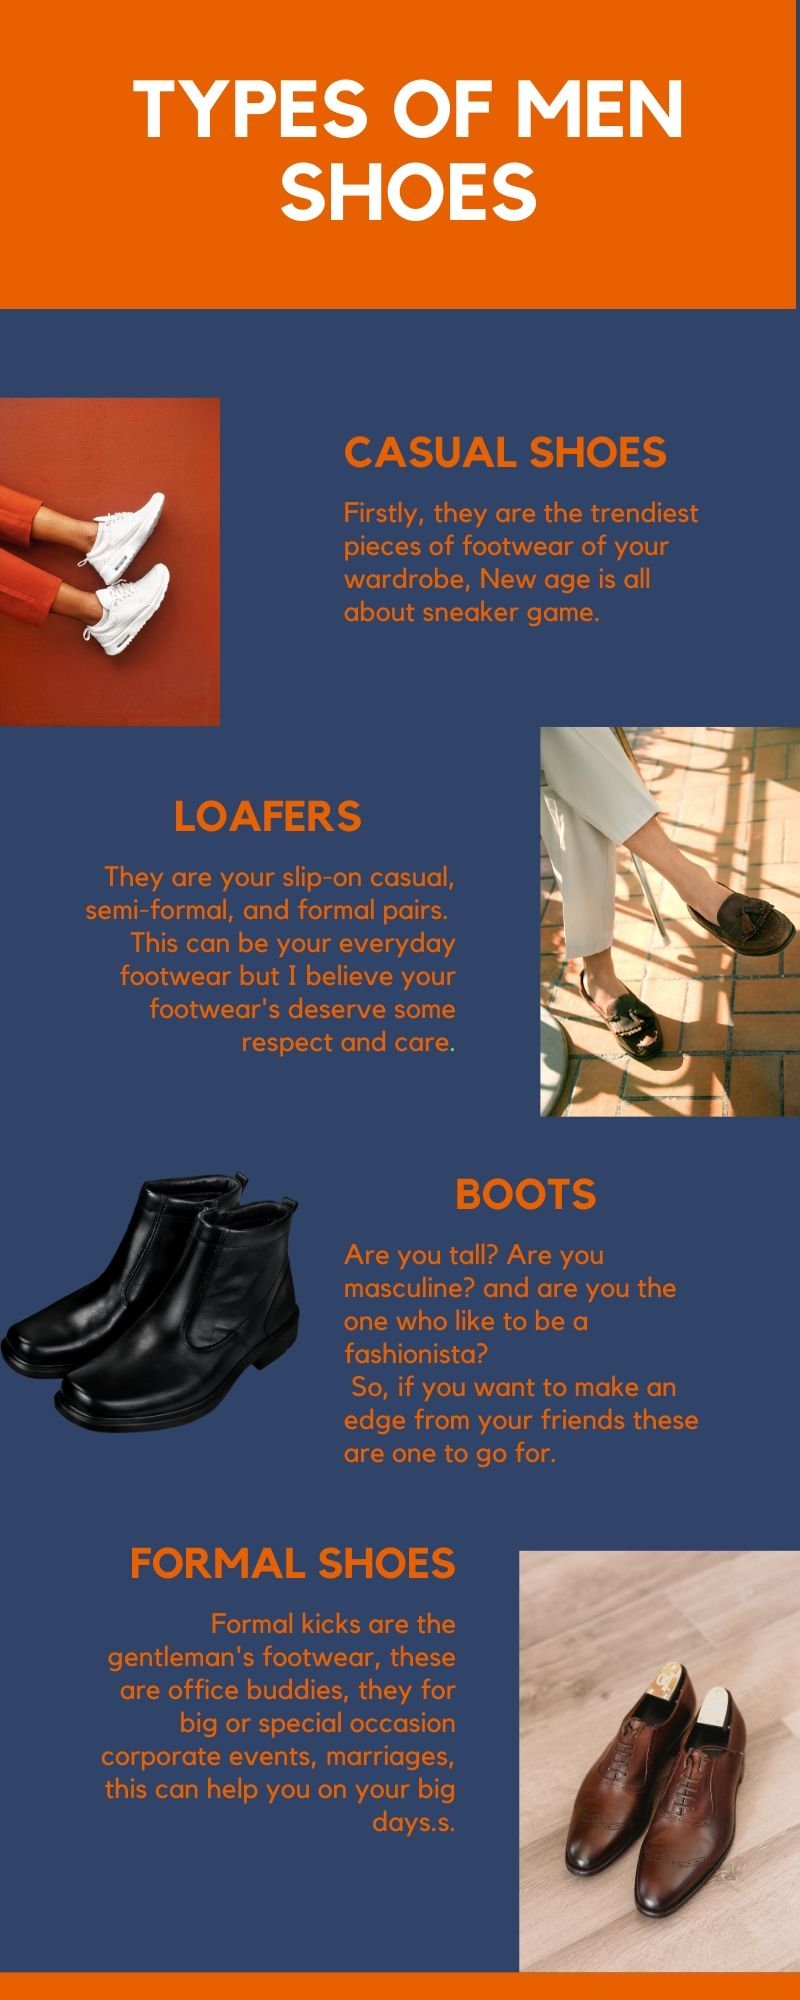 Types of men shoes